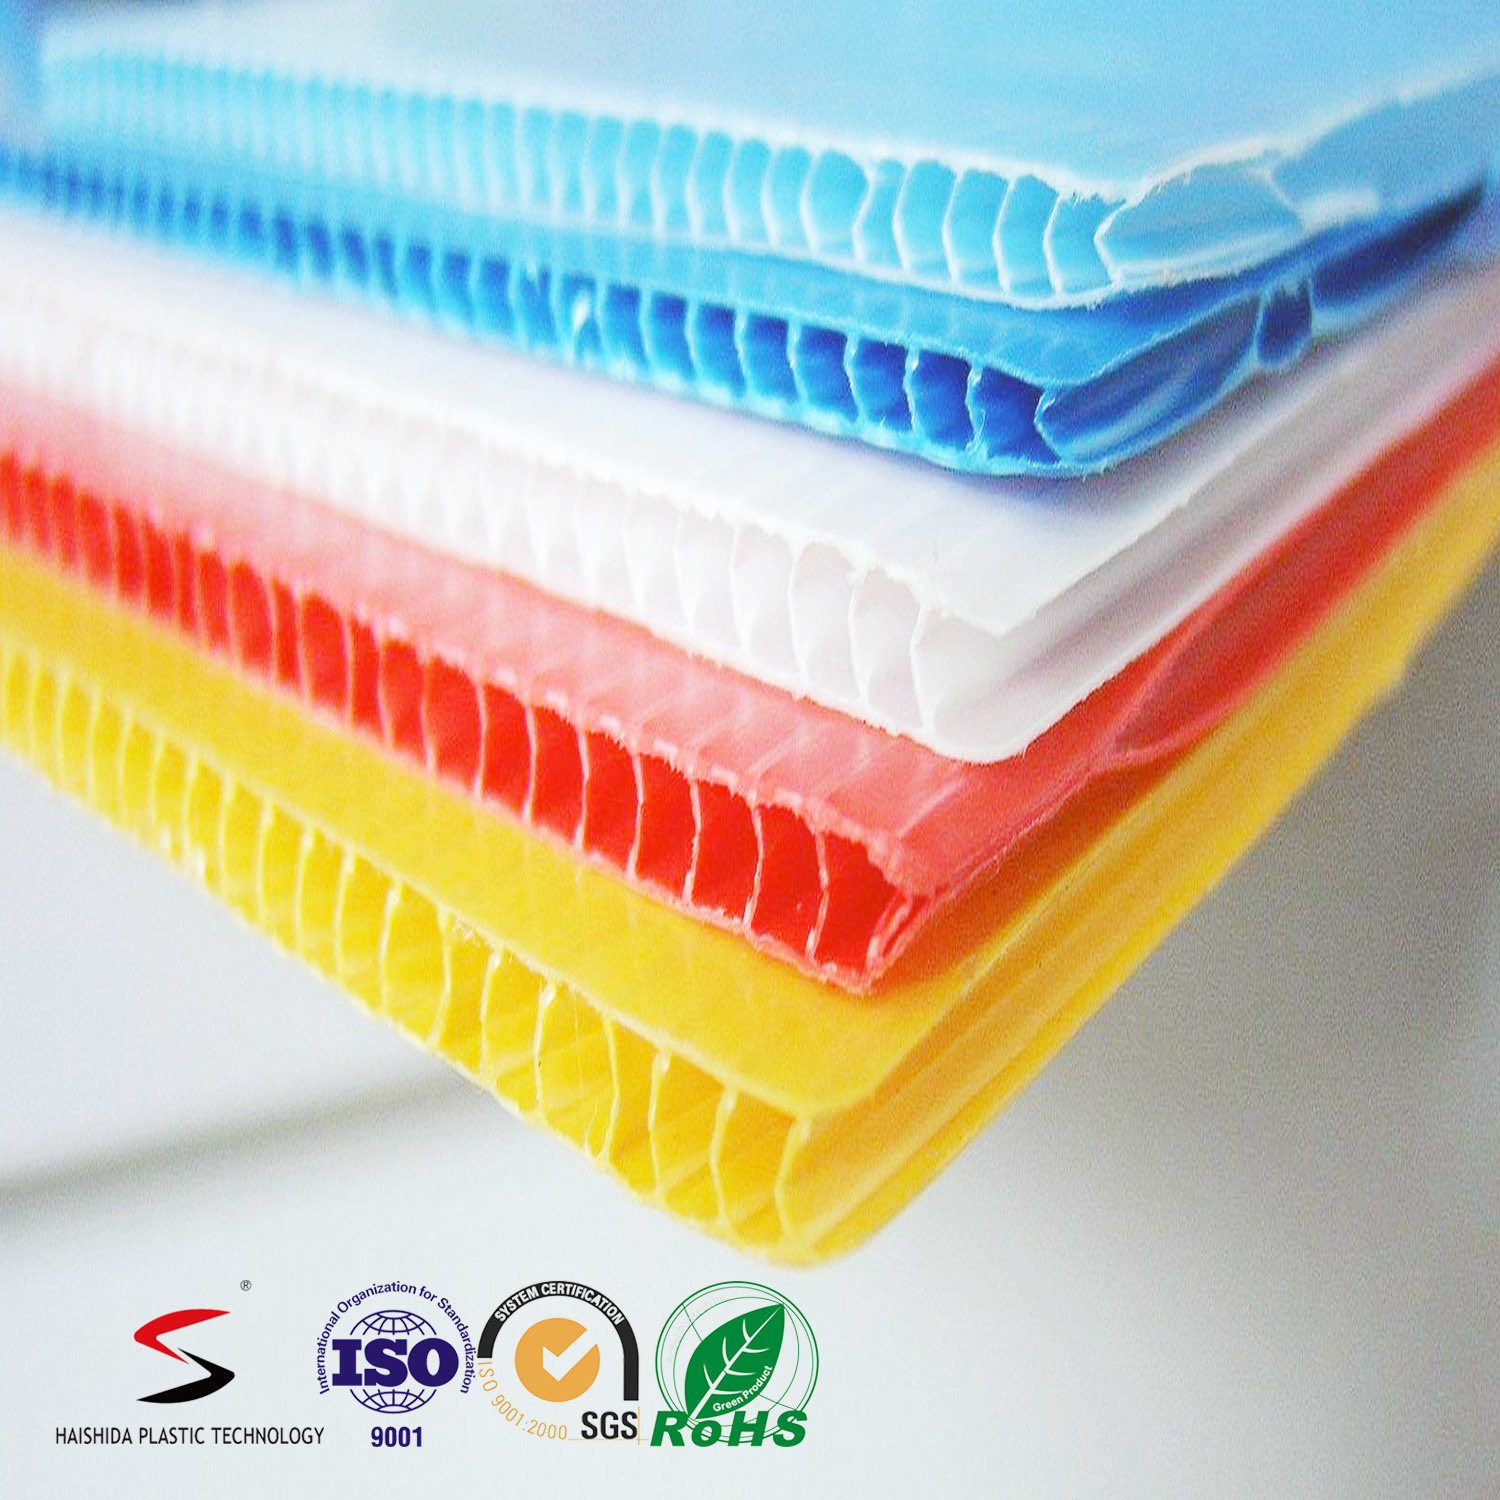 Corflute Board/ Polypropylene PP Twin Wall Corrugated Plastic Sheet 5mm